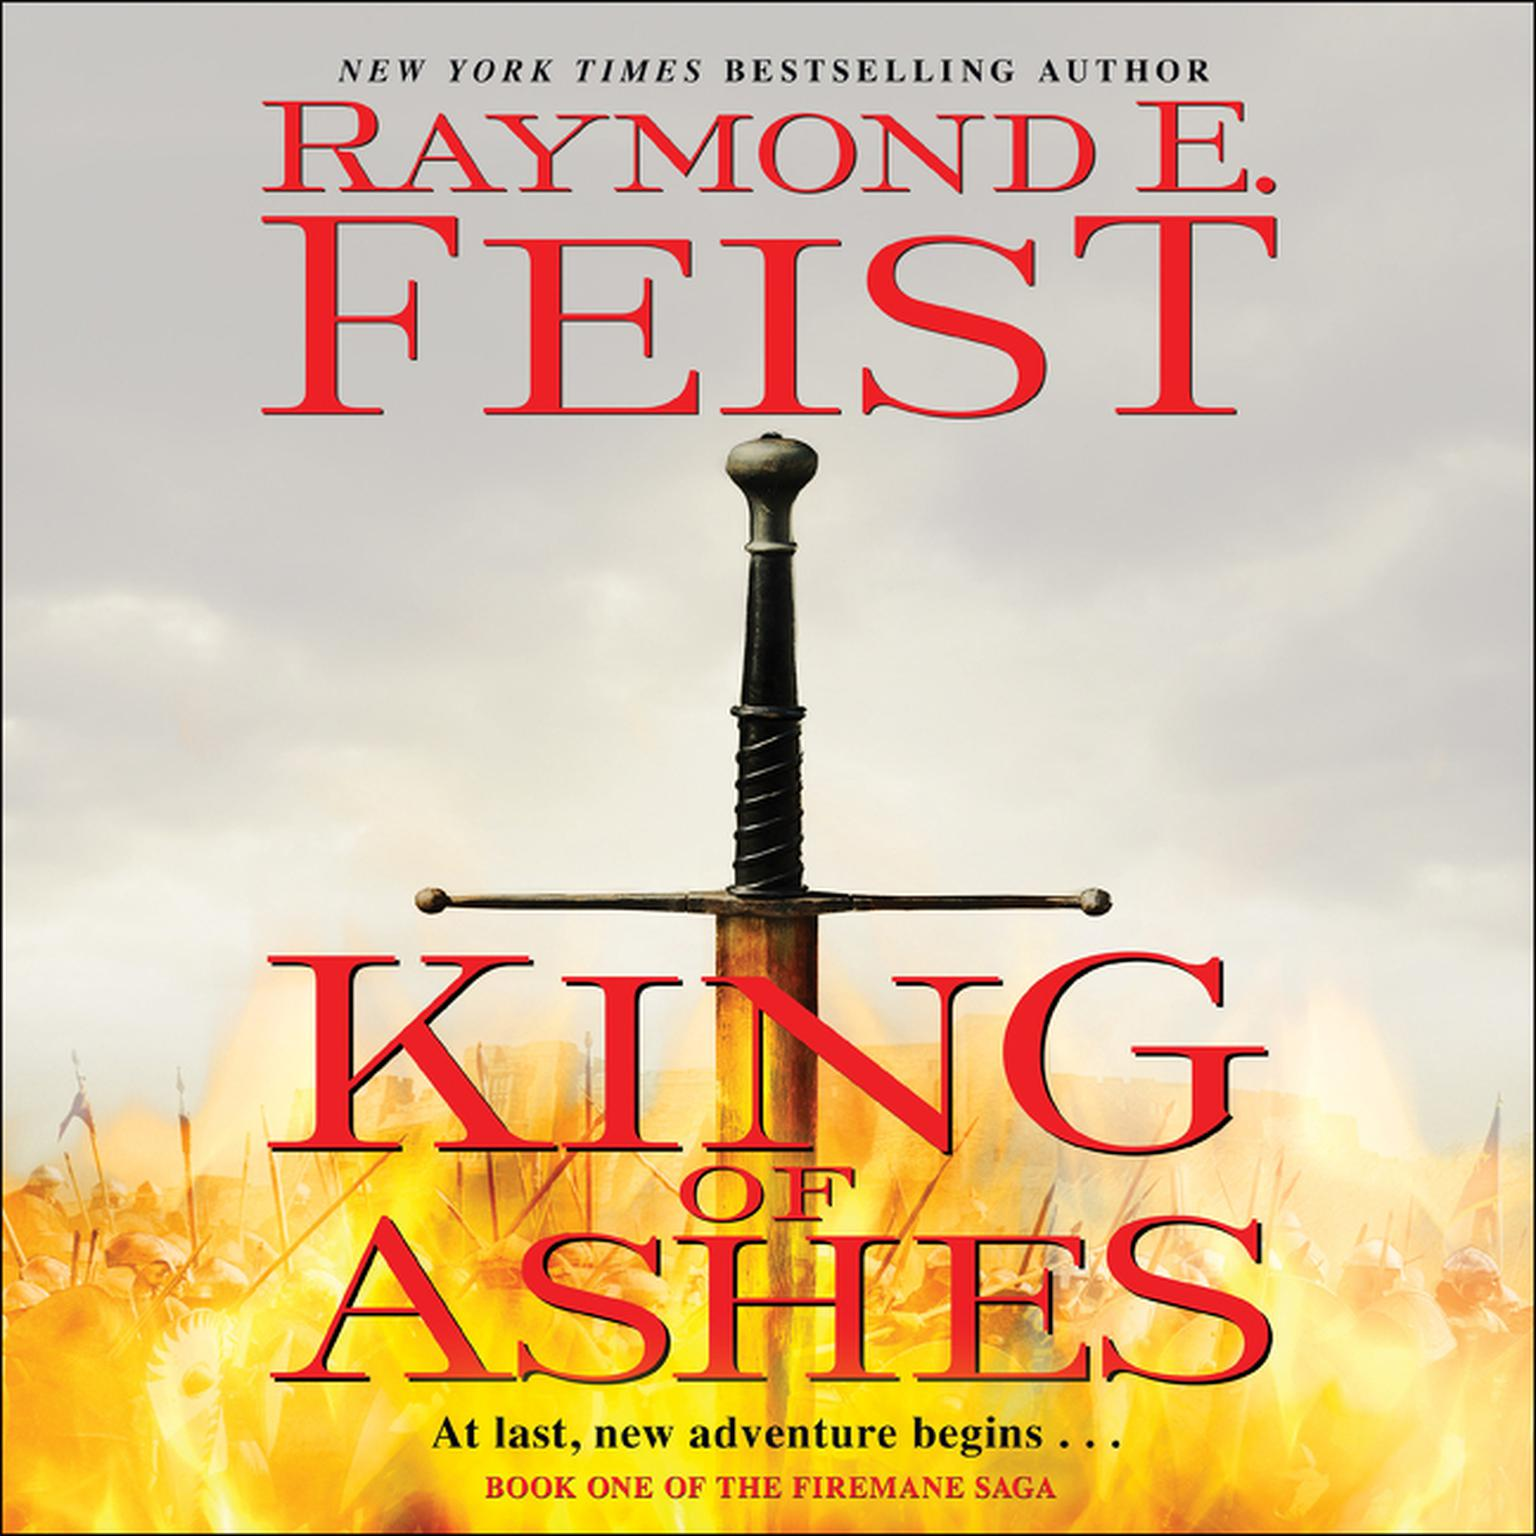 King of Ashes: Book One of The Firemane Saga Audiobook, by Raymond E. Feist